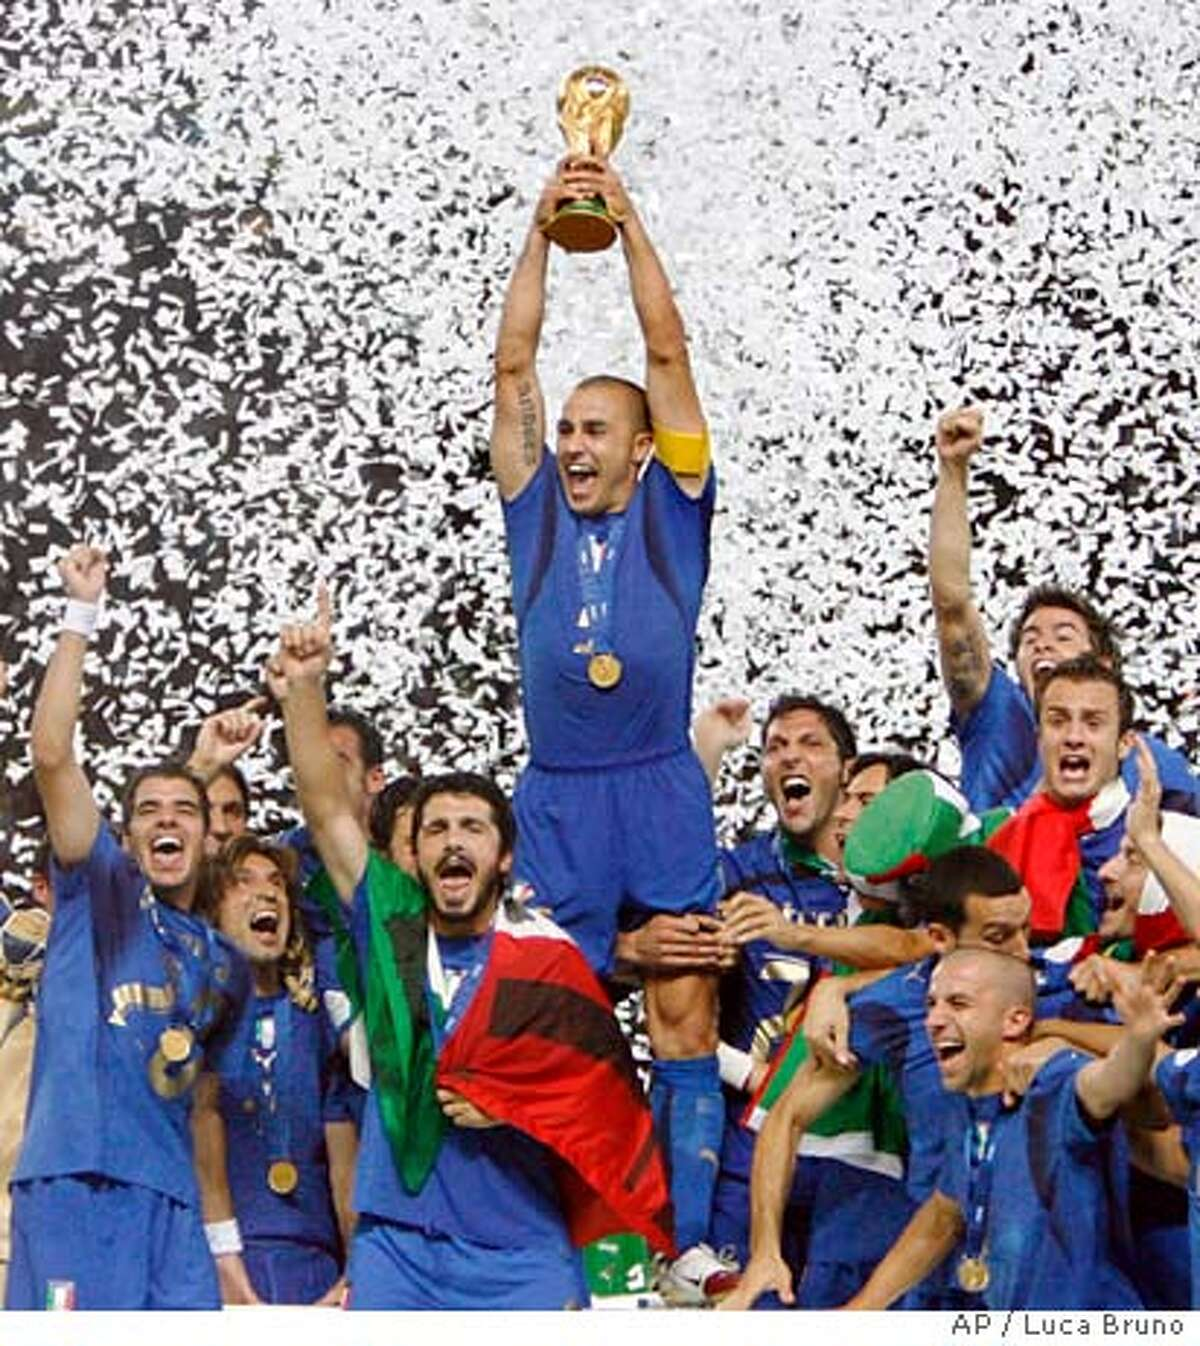 Italy's team captain Fabio Cannavaro holds aloft the World Cup trophy surrounded by teammates after the final of the soccer World Cup between Italy and France in the Olympic Stadium in Berlin, Sunday, July 9, 2006. Italy defeated France 5-3 in a shootout after a 1-1 draw. (AP Photo/Luca Bruno) ** MOBILE/PDA USAGE OUT **